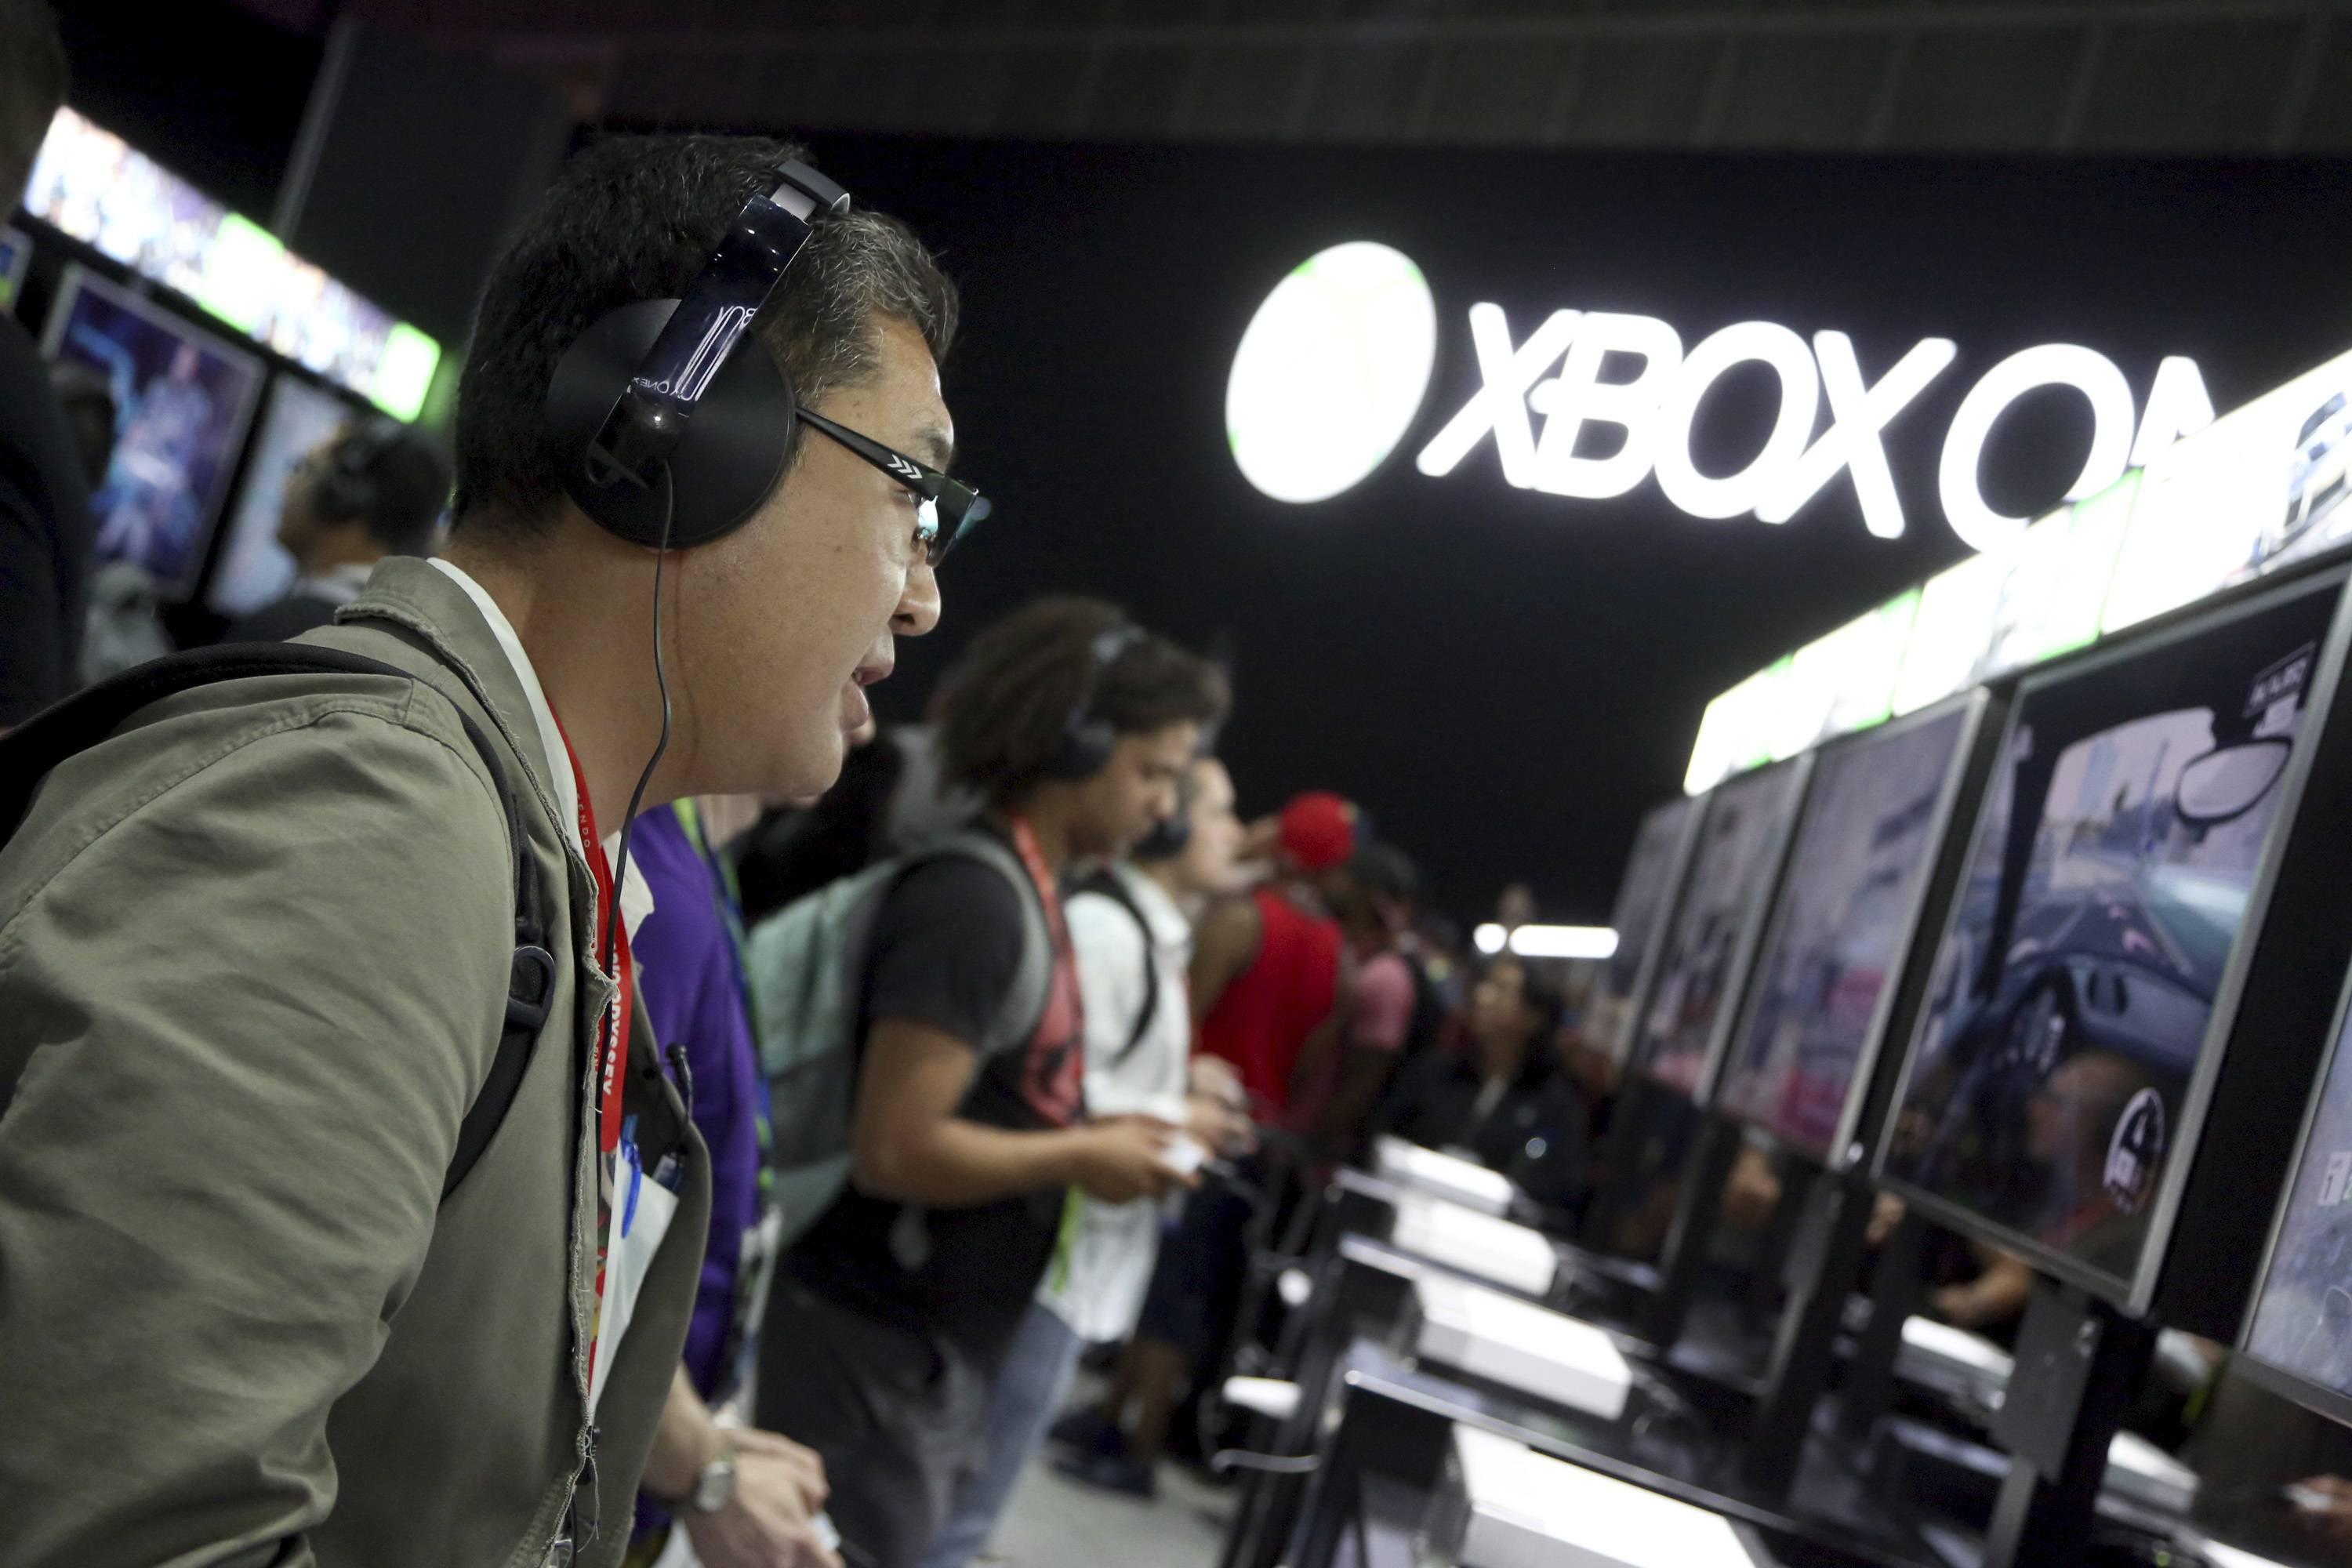 Microsoft bets on future of gaming consoles with Xbox One X